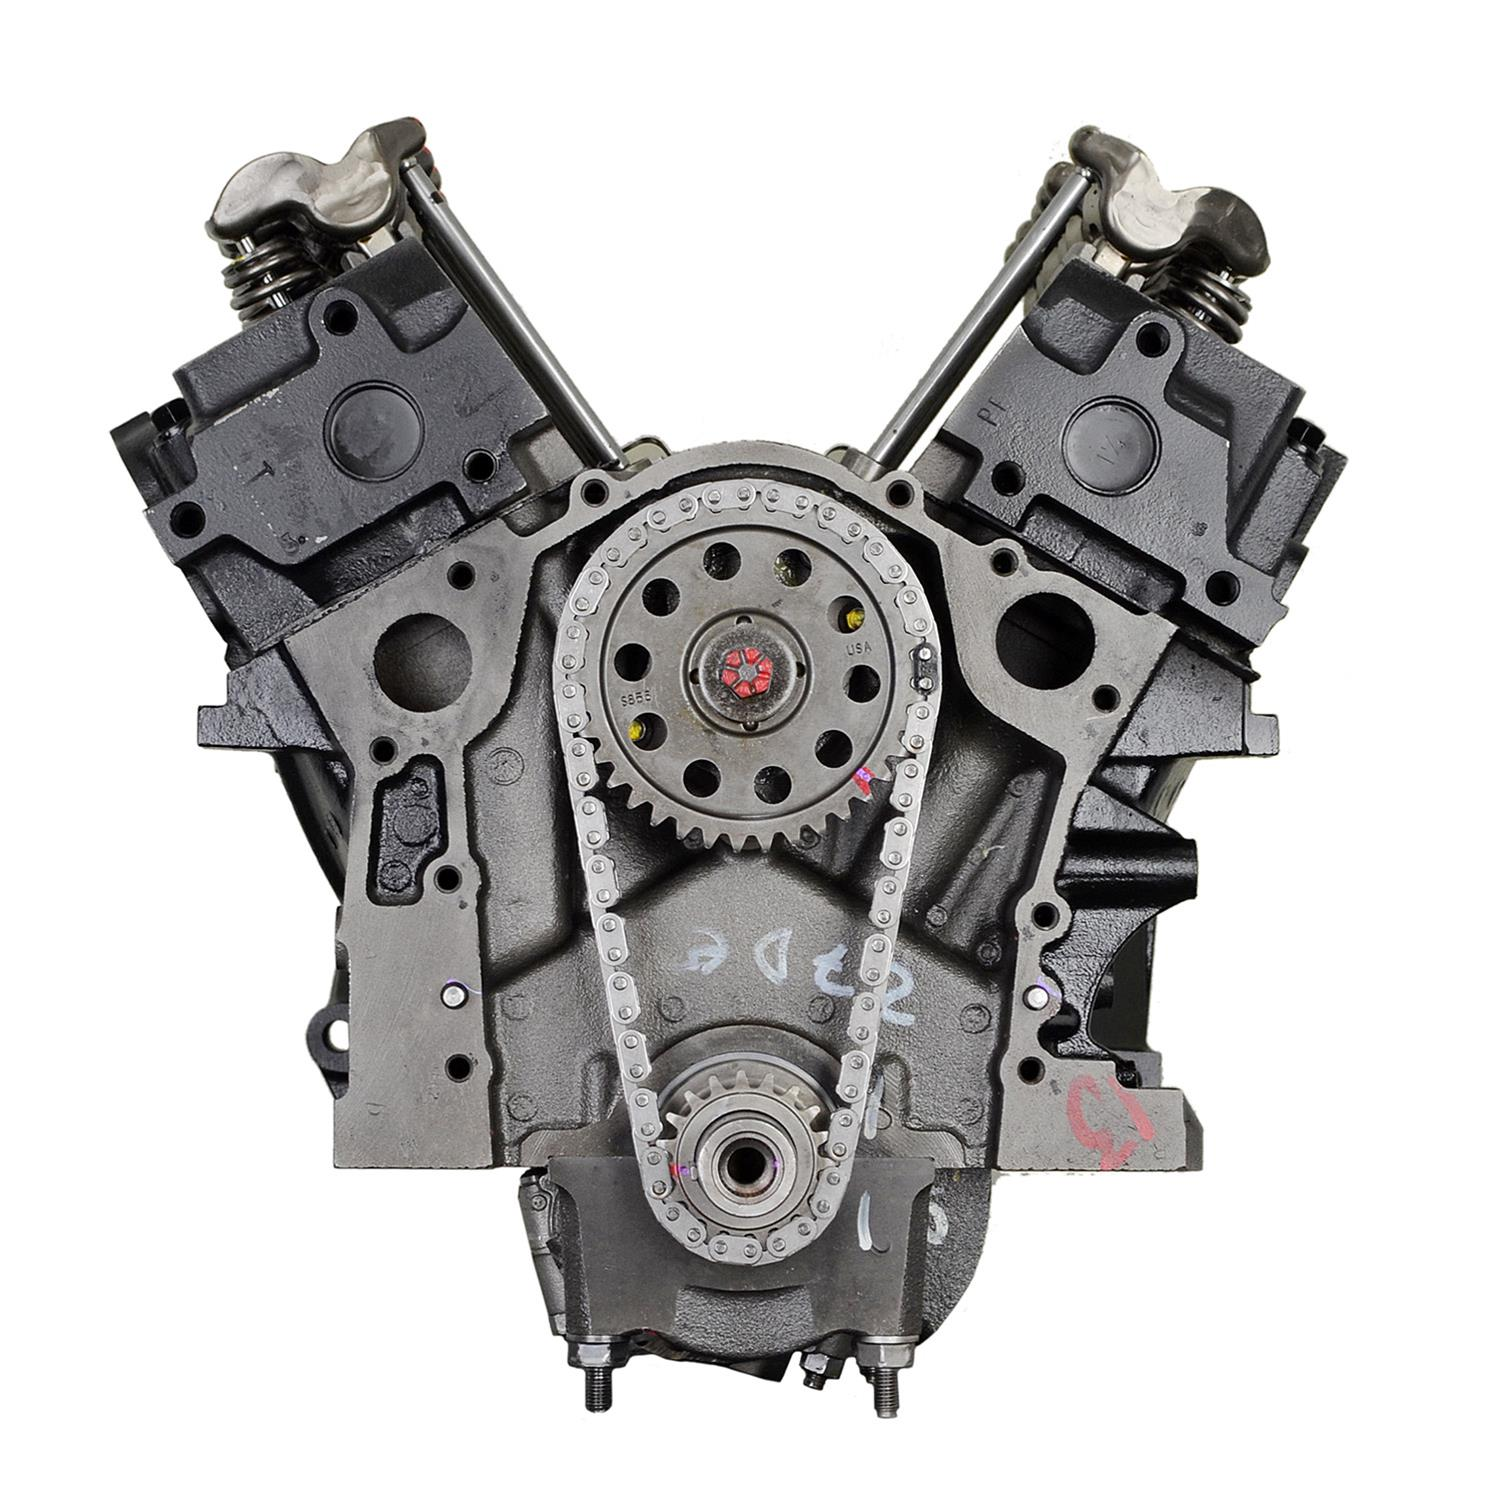 VEGE Remanufactured Long Block Crate Engines DFXV